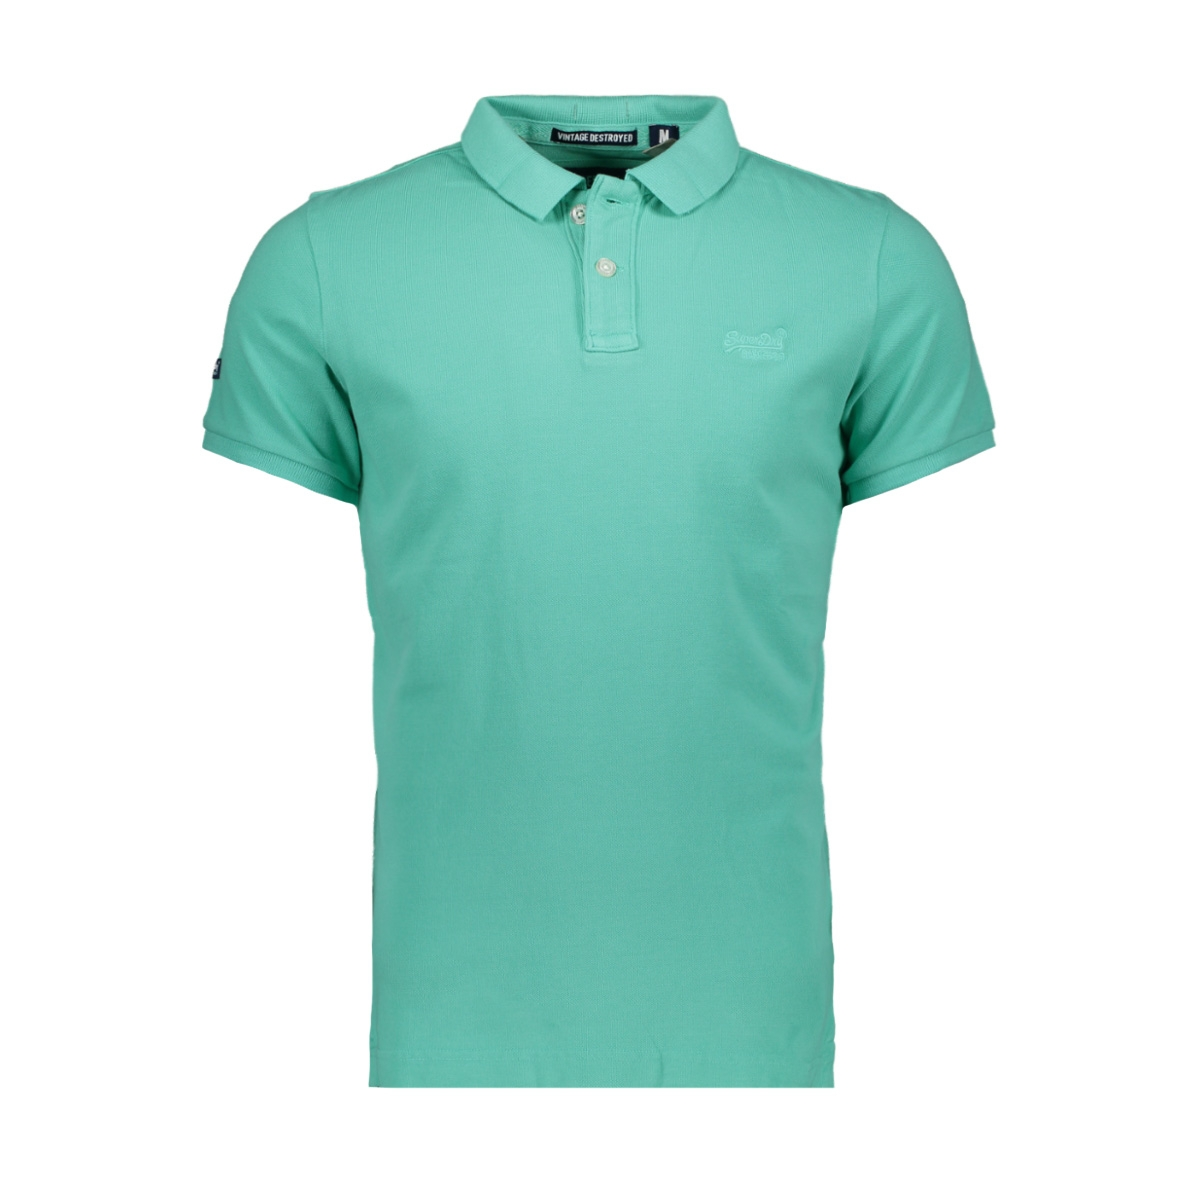 vintage destroy s s pique polo m11009tqf5 superdry polo awesome mint